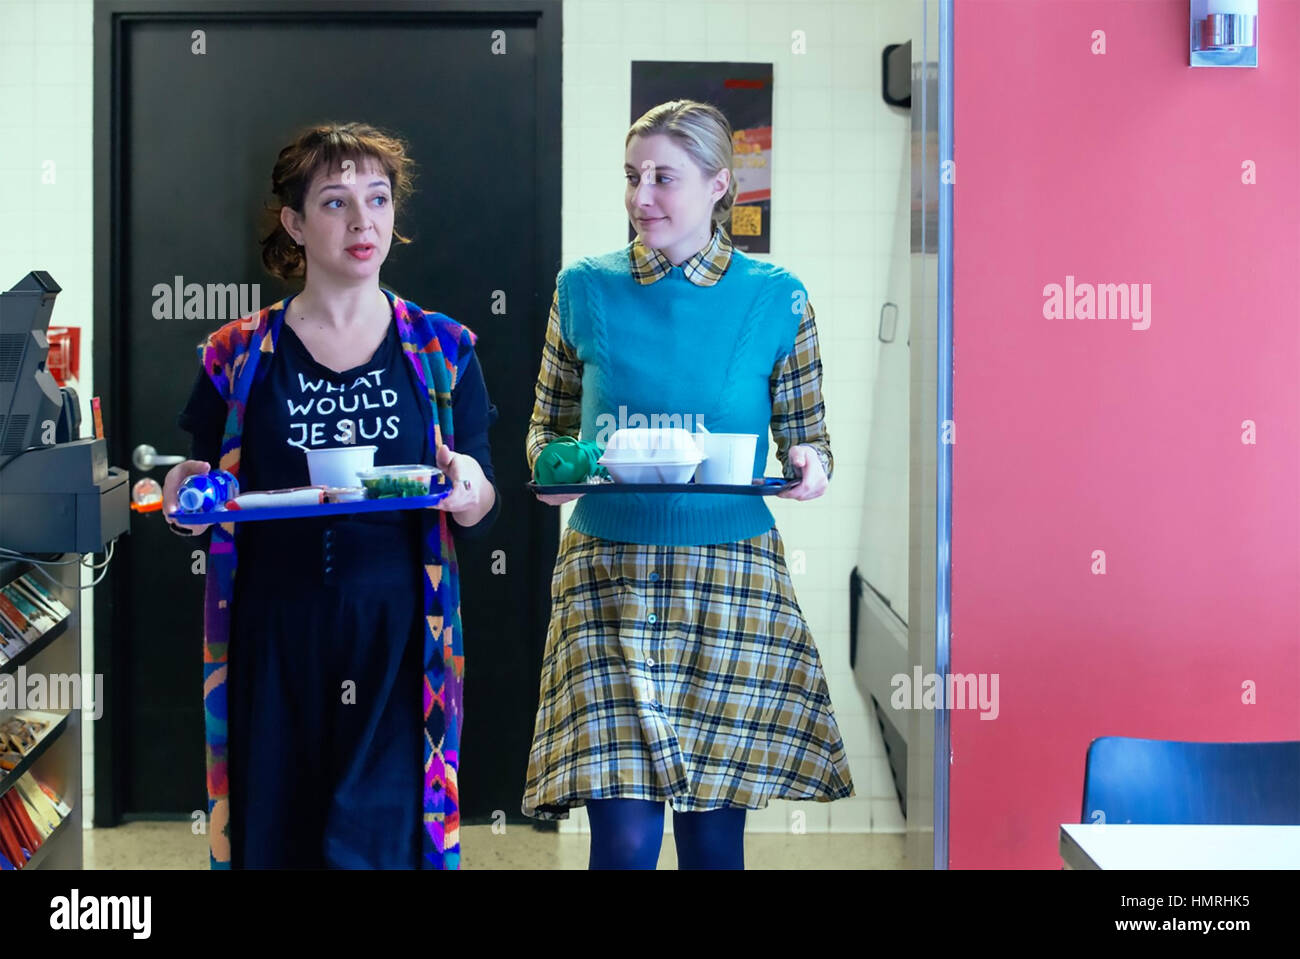 MAGGIE'S PLAN 2016 Franklin Street film with Greta Gerwig at right and Maya Rudolph - Stock Image